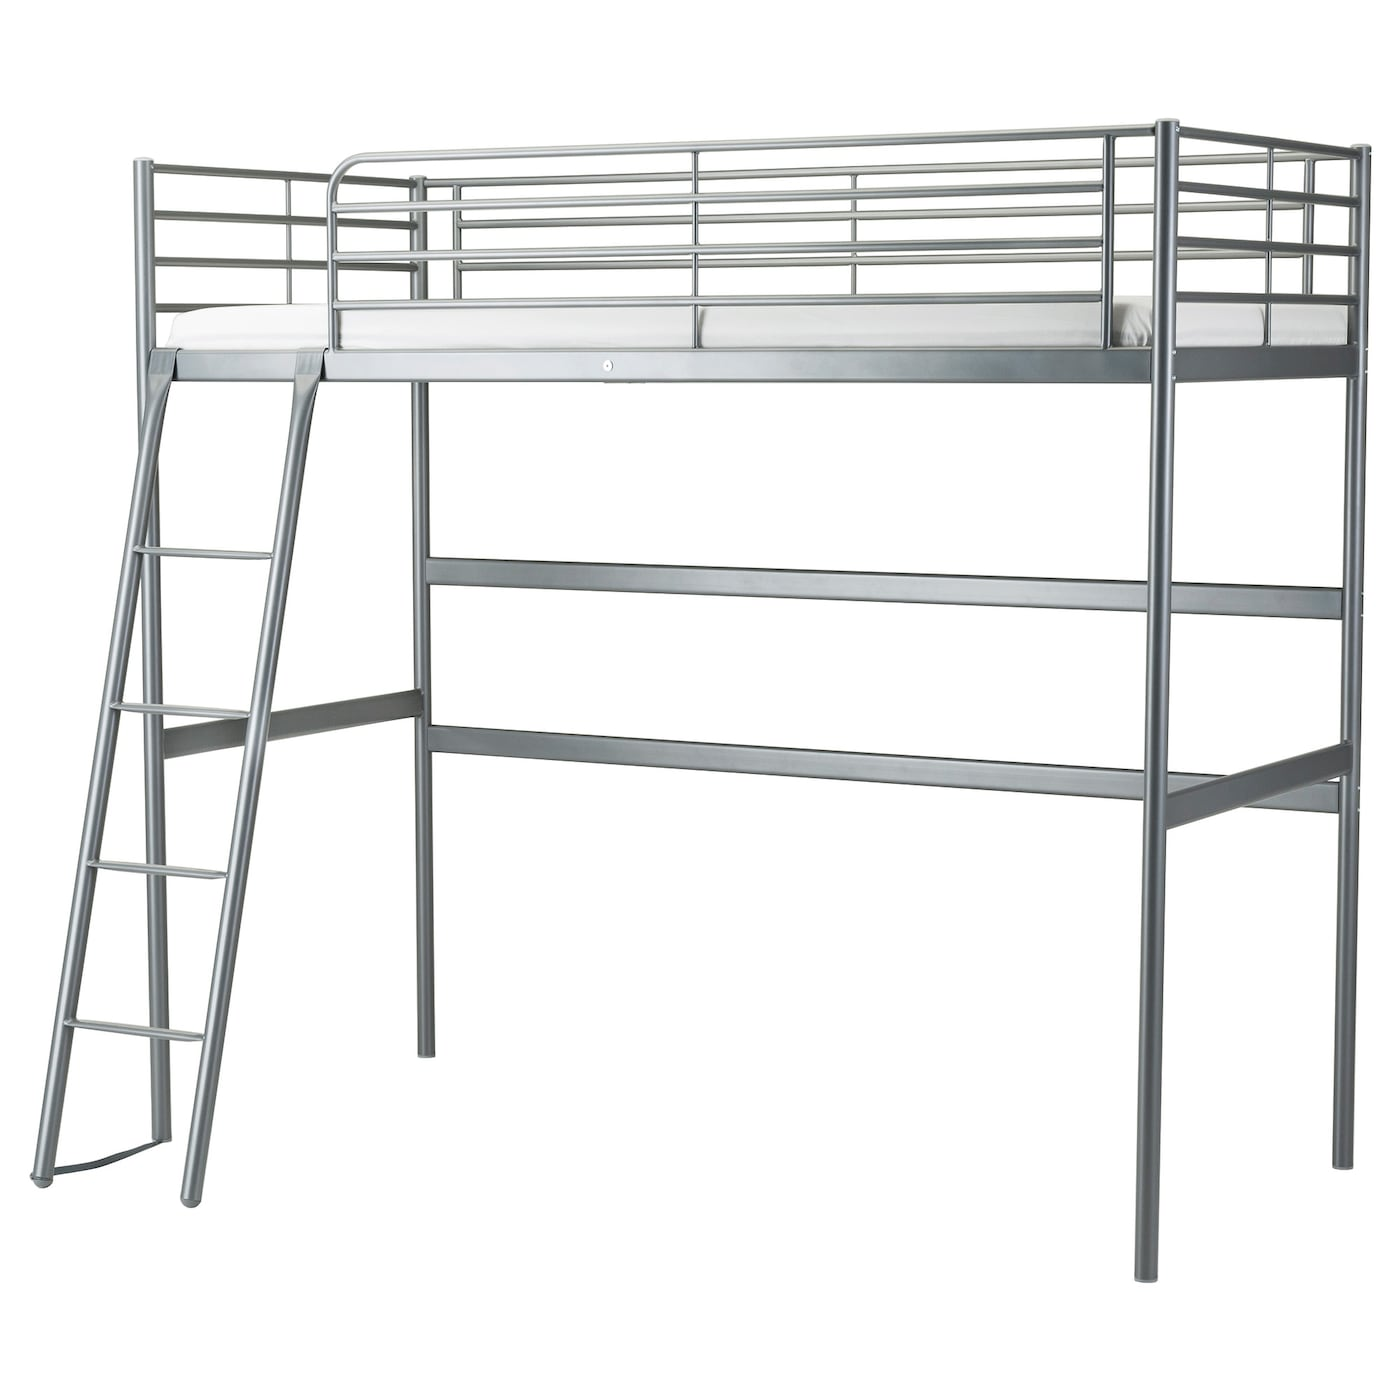 IKEA SVÄRTA loft bed frame The ladder mounts on the right or the left side of the bed.